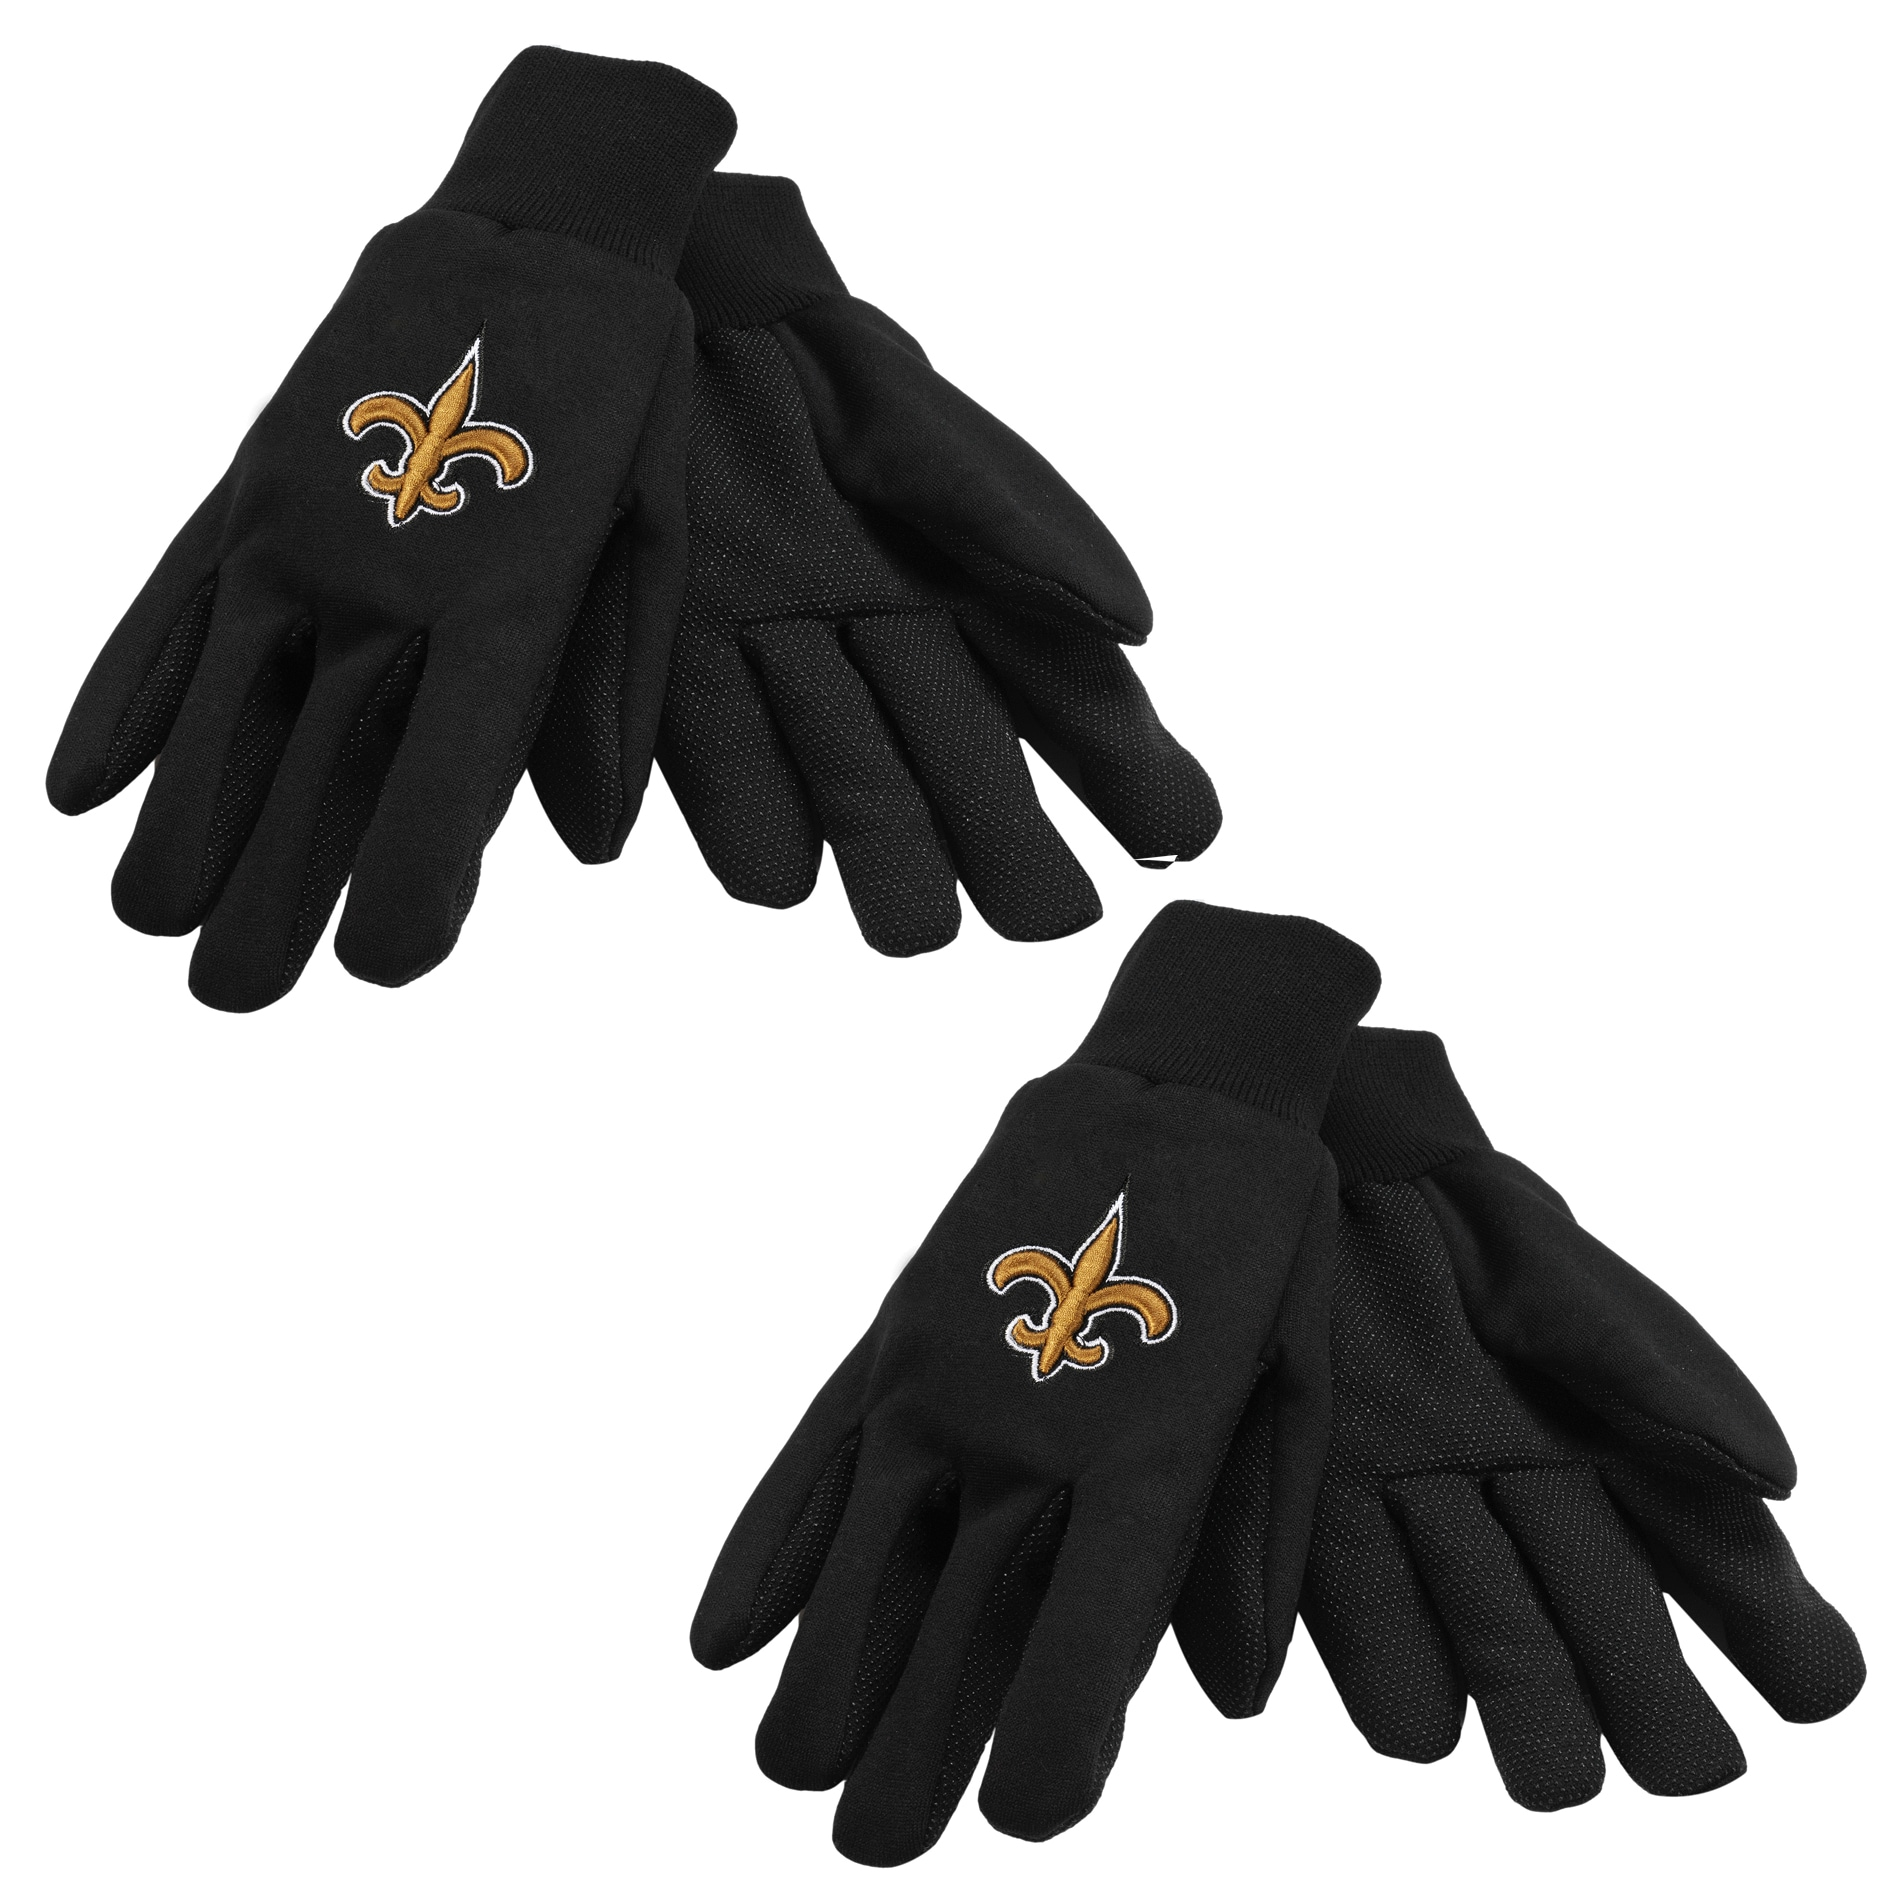 New Orleans Saints Two-tone Gloves (Set of 2 Pair)